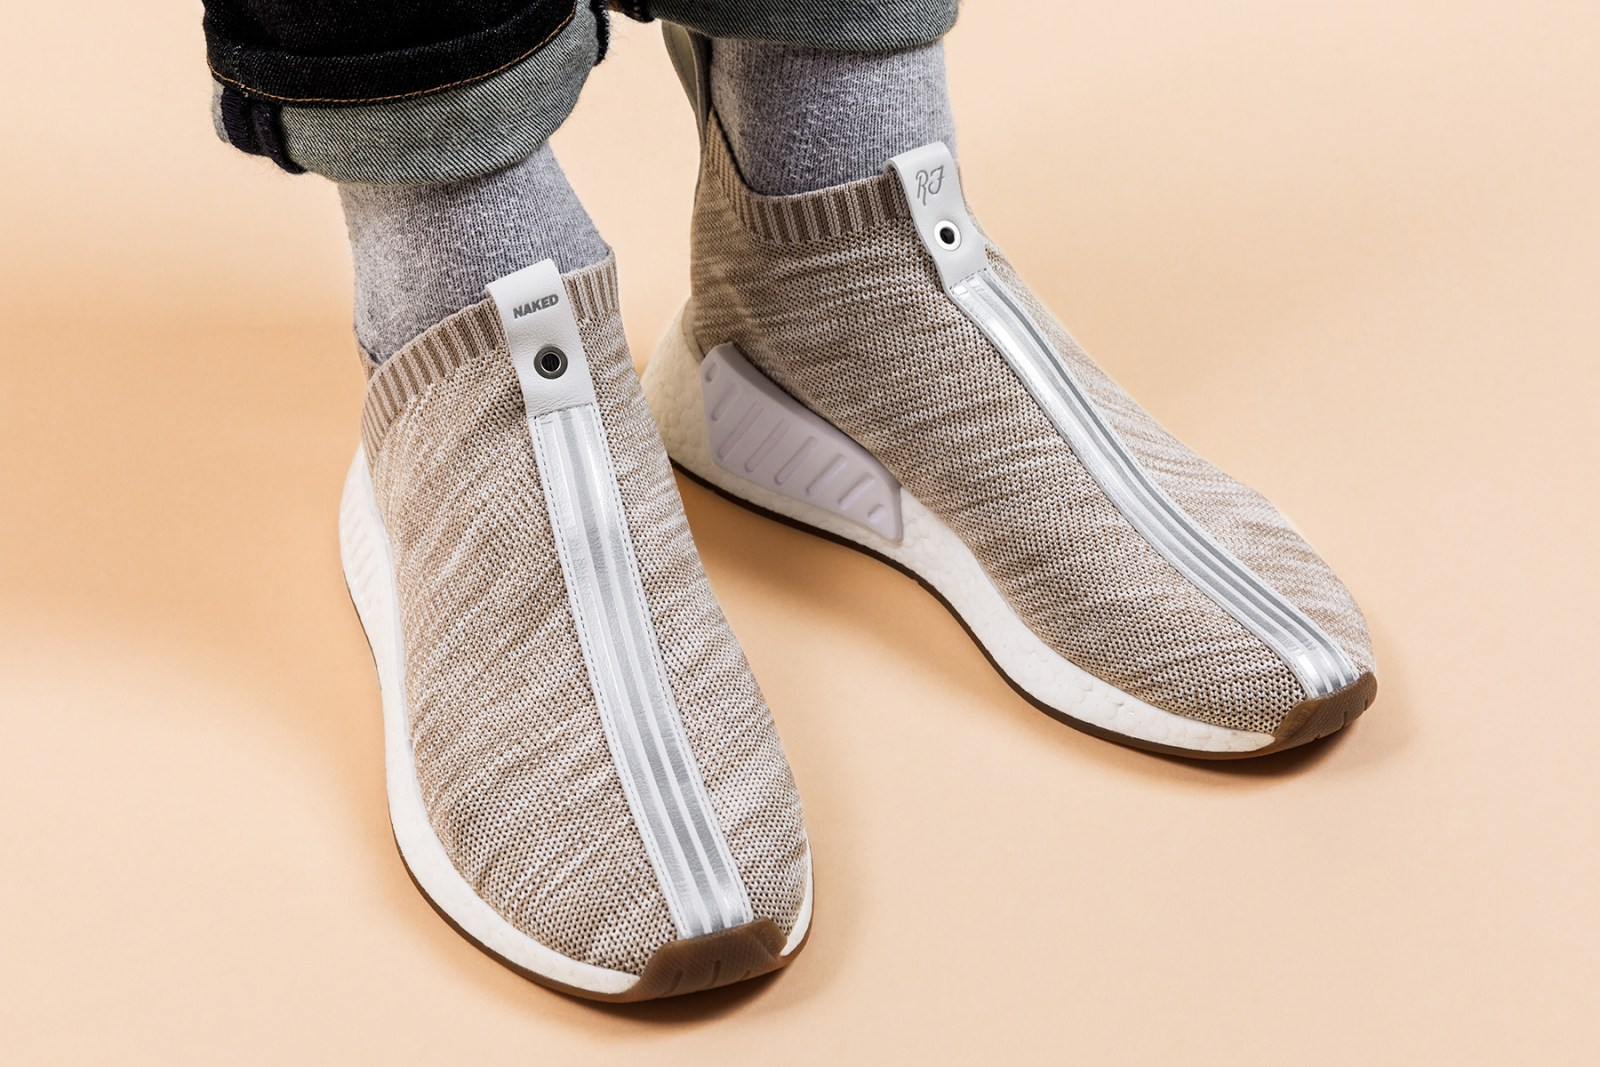 giay the thao adidas 2017 - Kith x Naked x adidas Consortium NMD City Sock - elle man 2